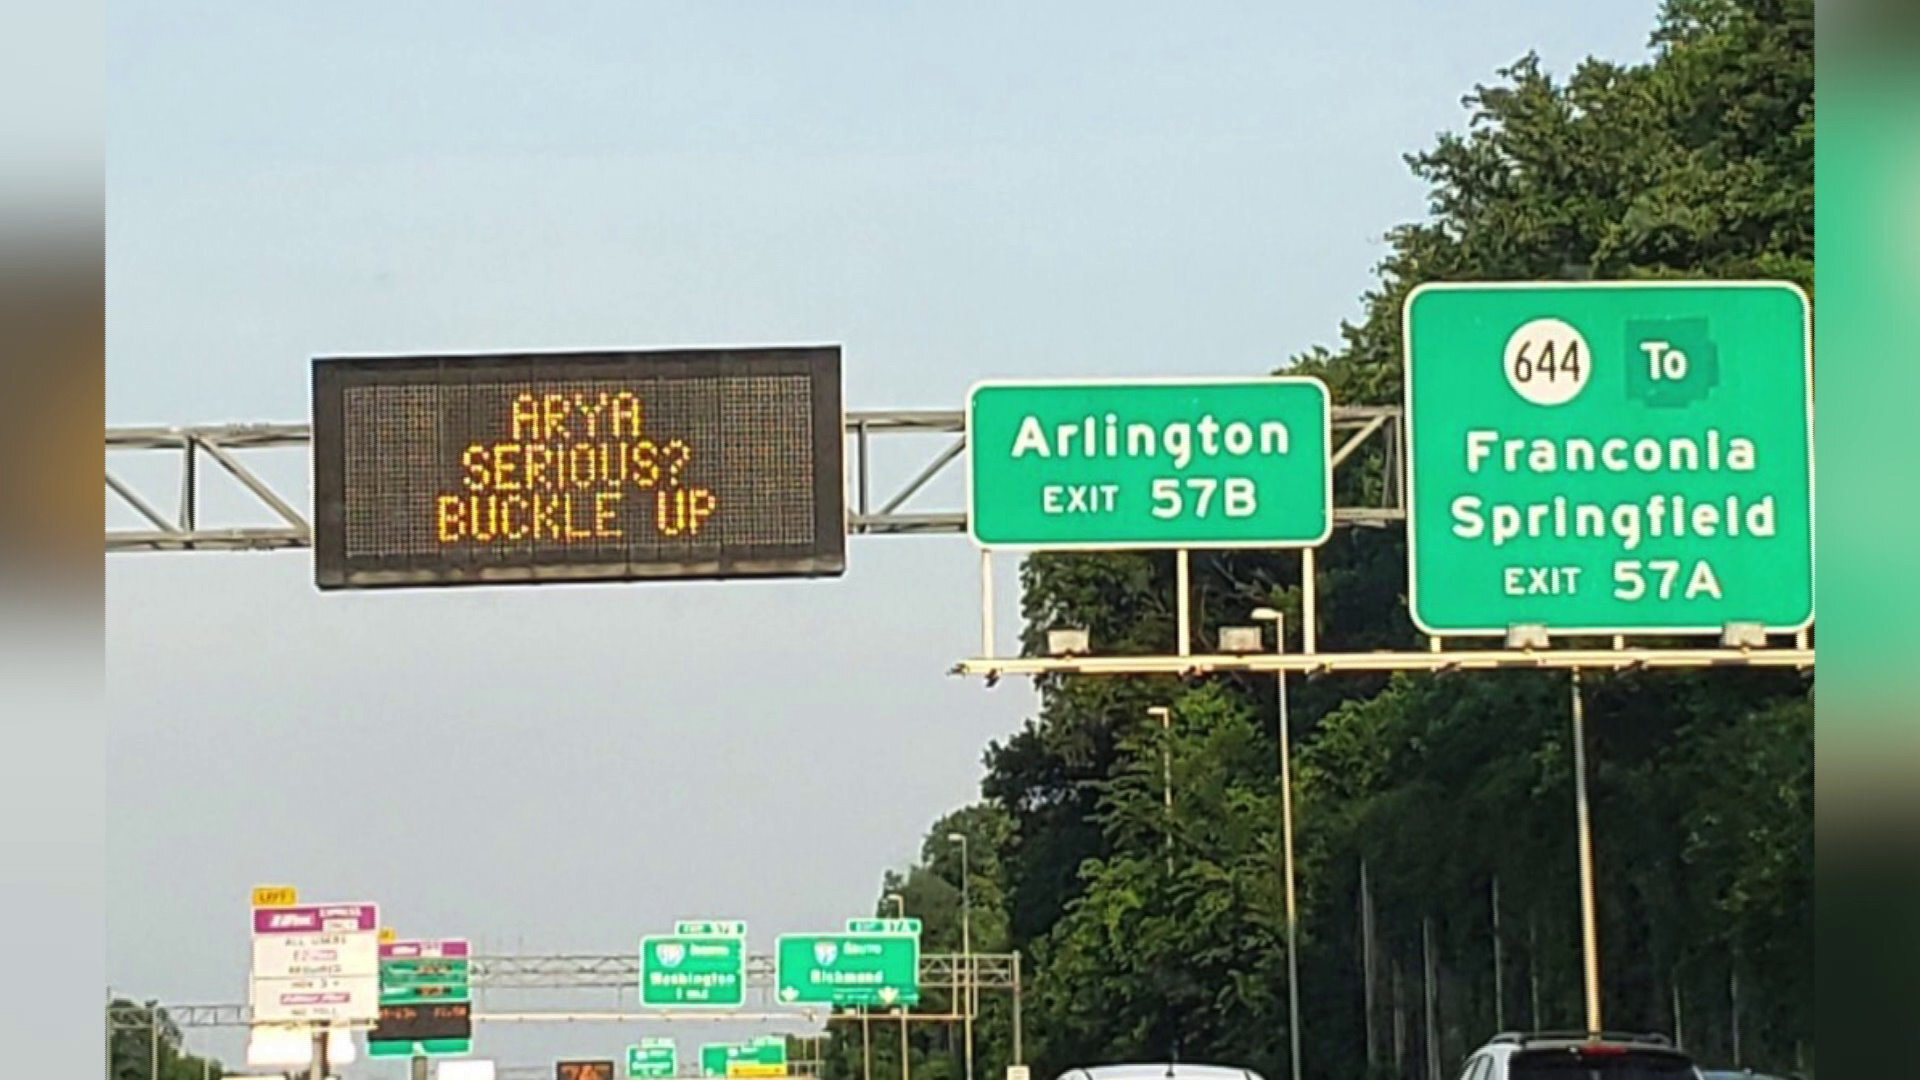 Photos: VDOT capitalizing on 'Game of Thrones' to remind drivers to buckleup